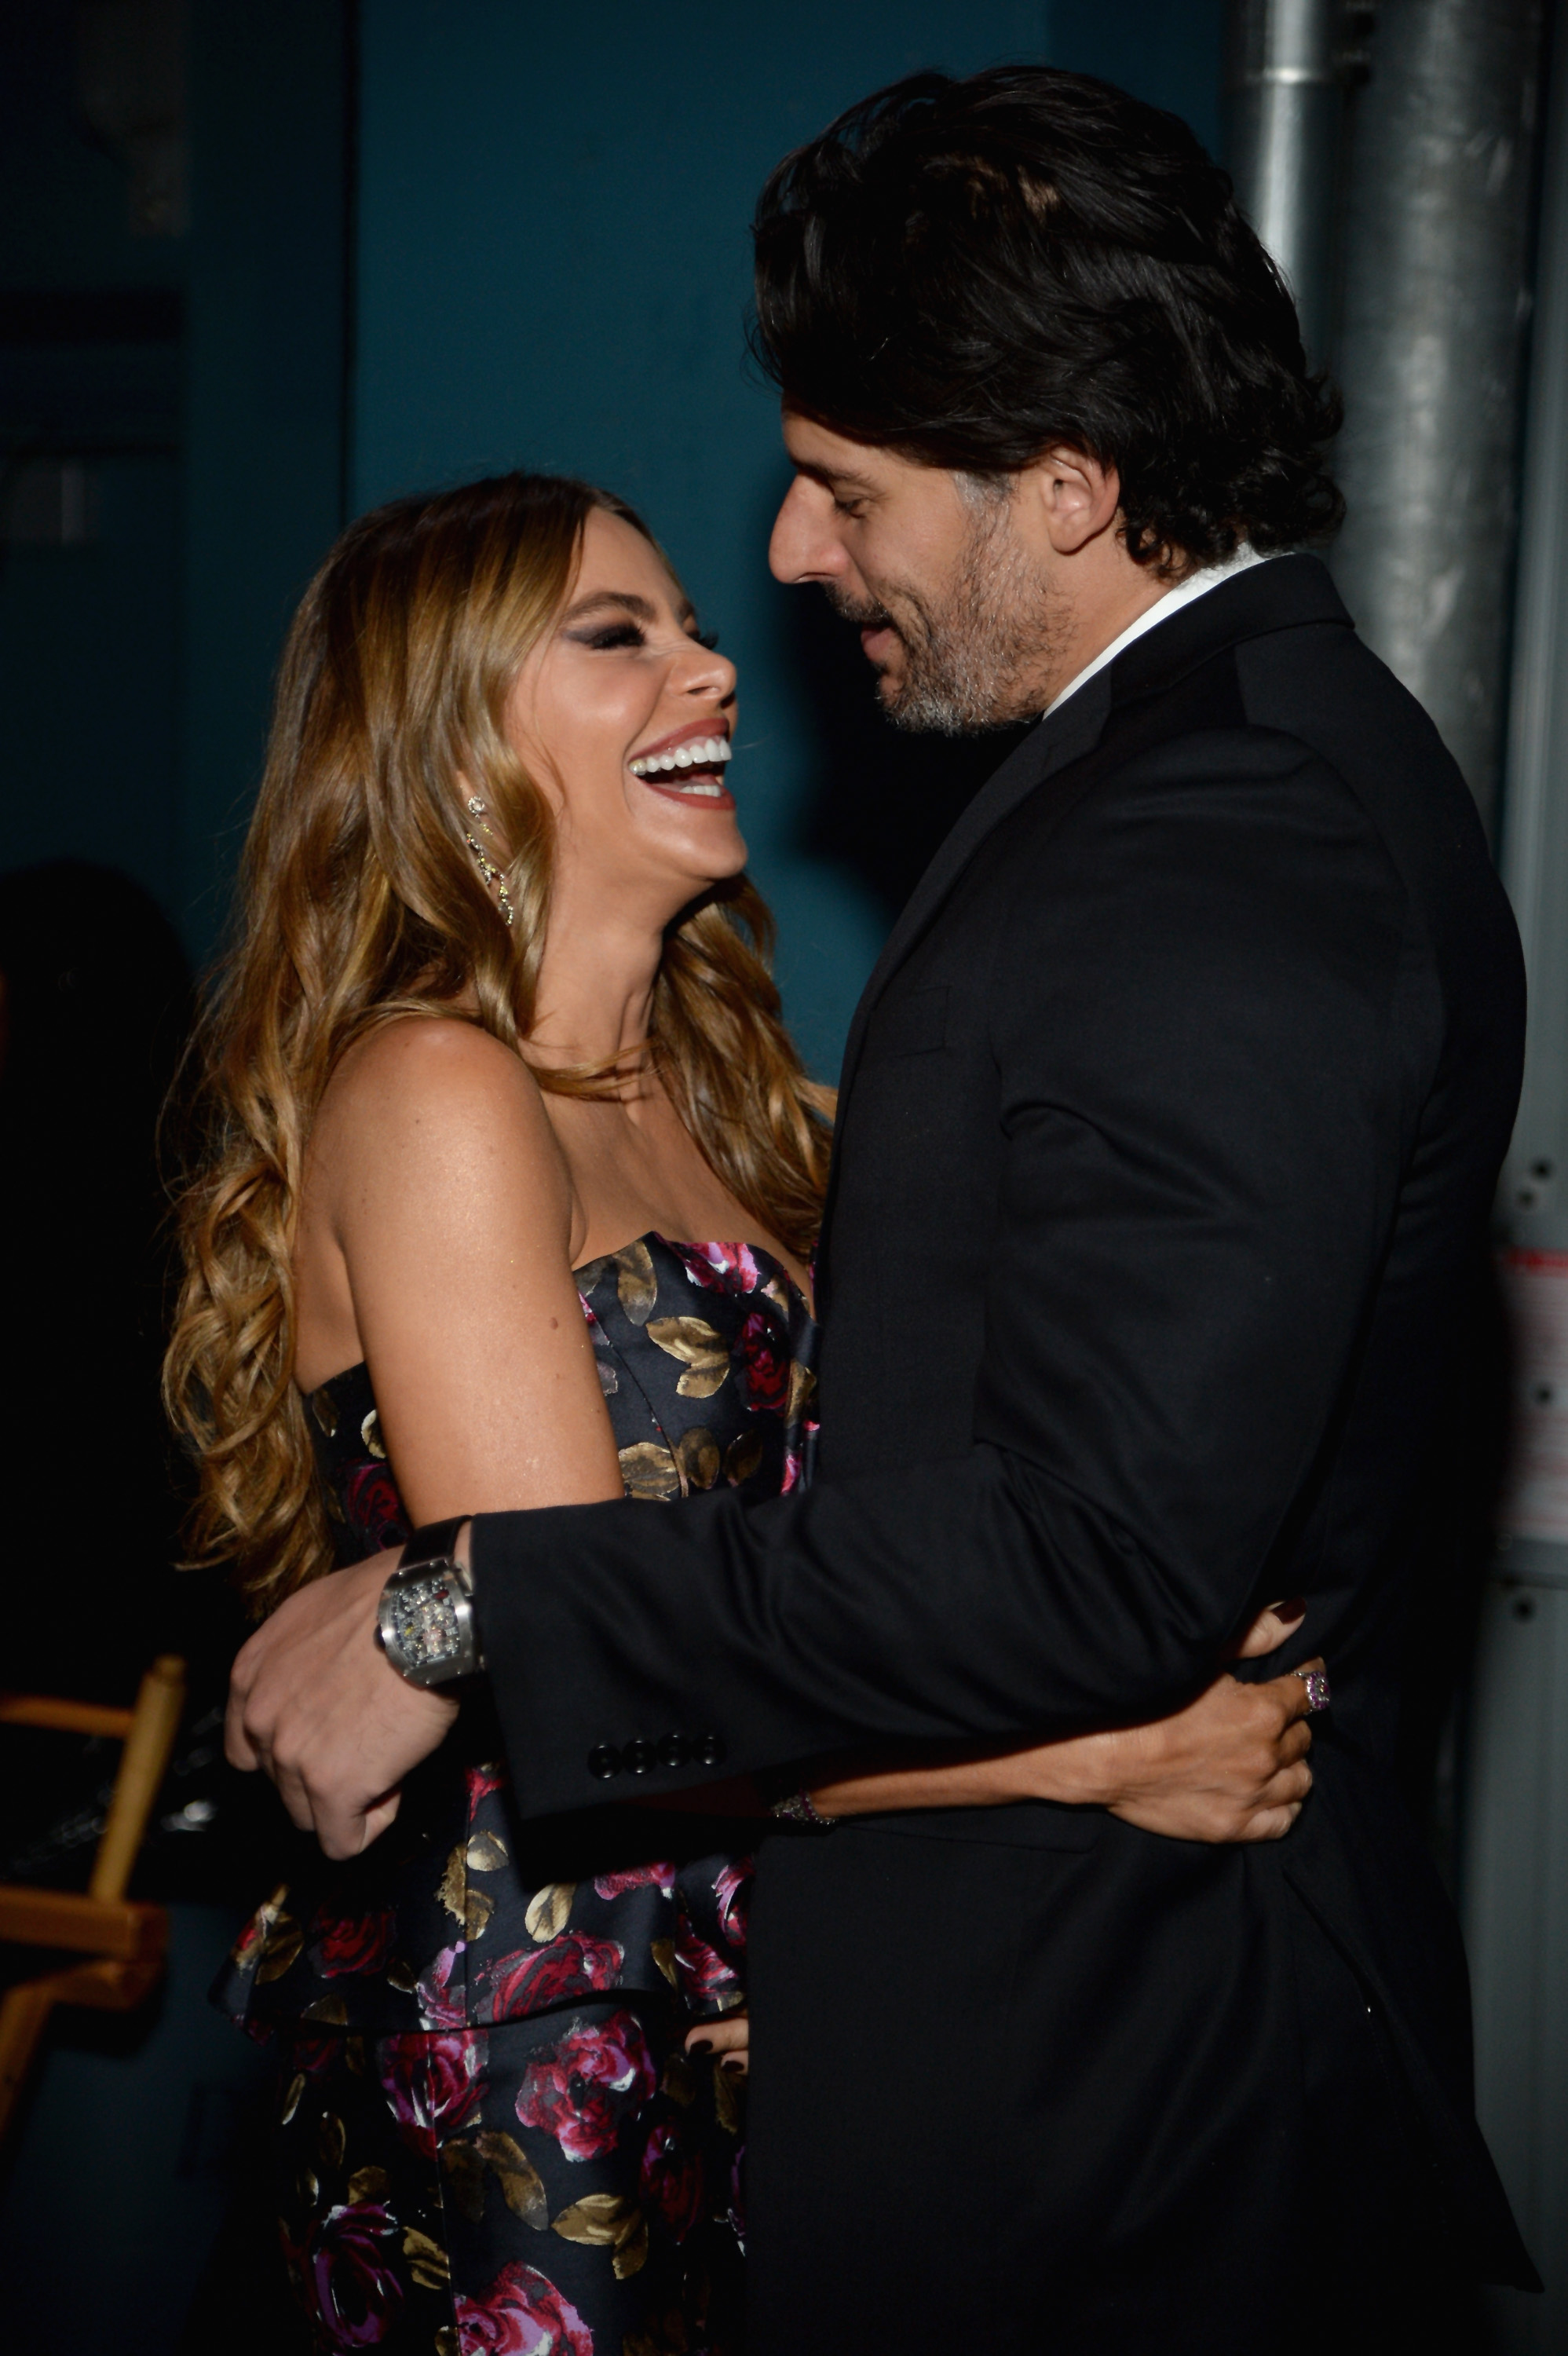 HOLLYWOOD, CA - NOVEMBER 12:  Actors Sofia Vergara (L) and Joe Manganiello attend the special tribute to Sophia Loren during the AFI FEST 2014 presented by Audi at Dolby Theatre on November 12, 2014 in Hollywood, California.  (Photo by Michael Kovac/Getty Images for AFI)